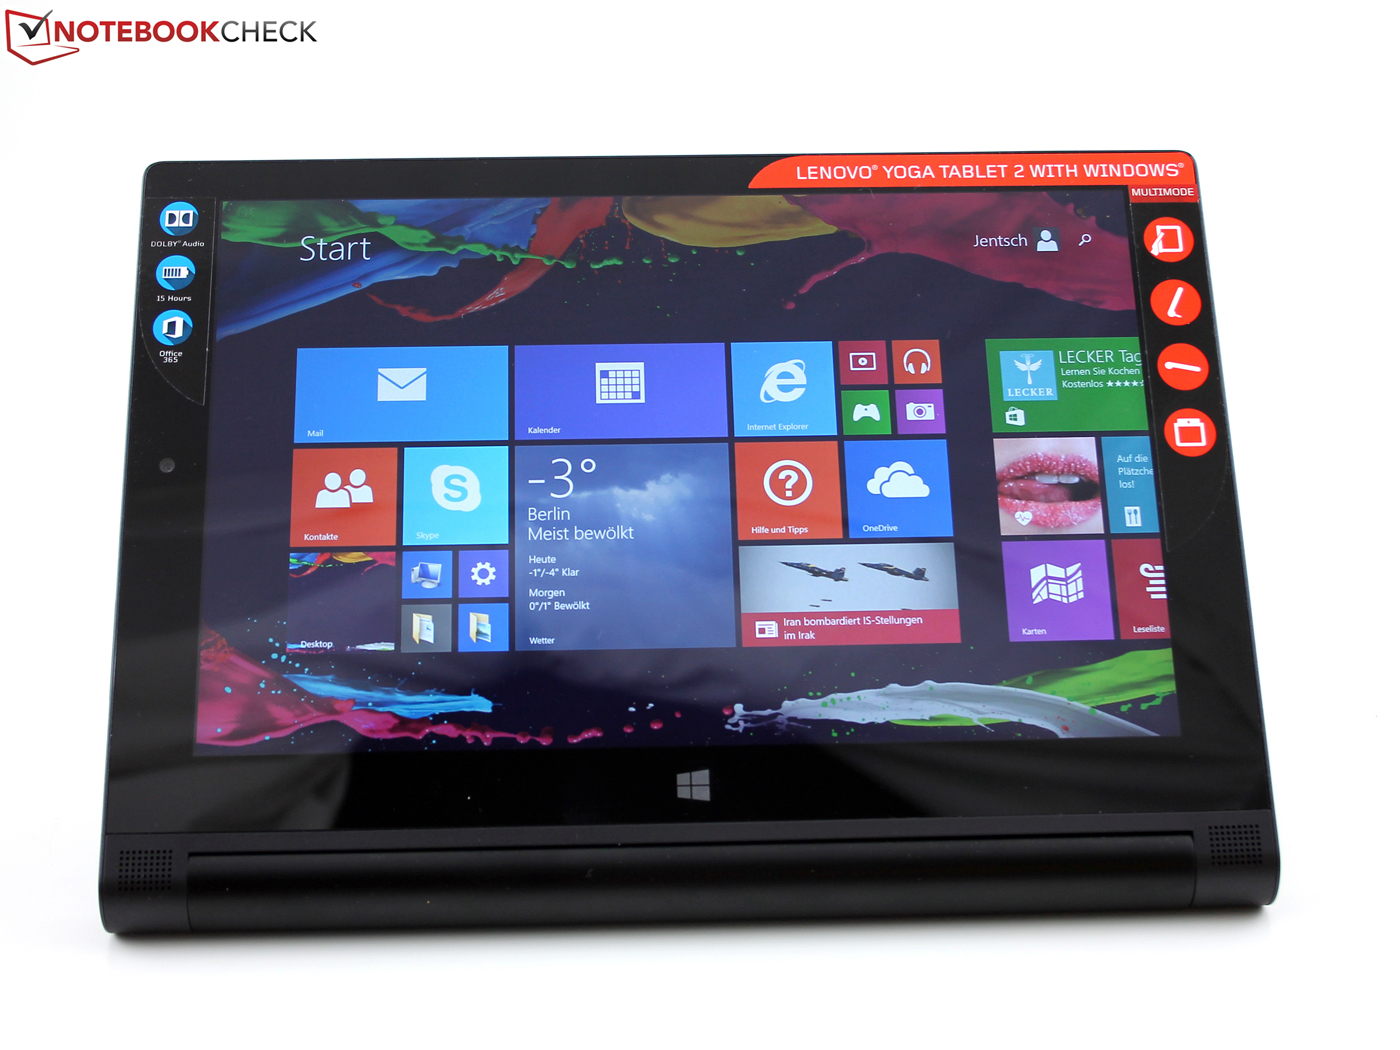 Lenovo Yoga 2 1051f Windows Tablet Review Update